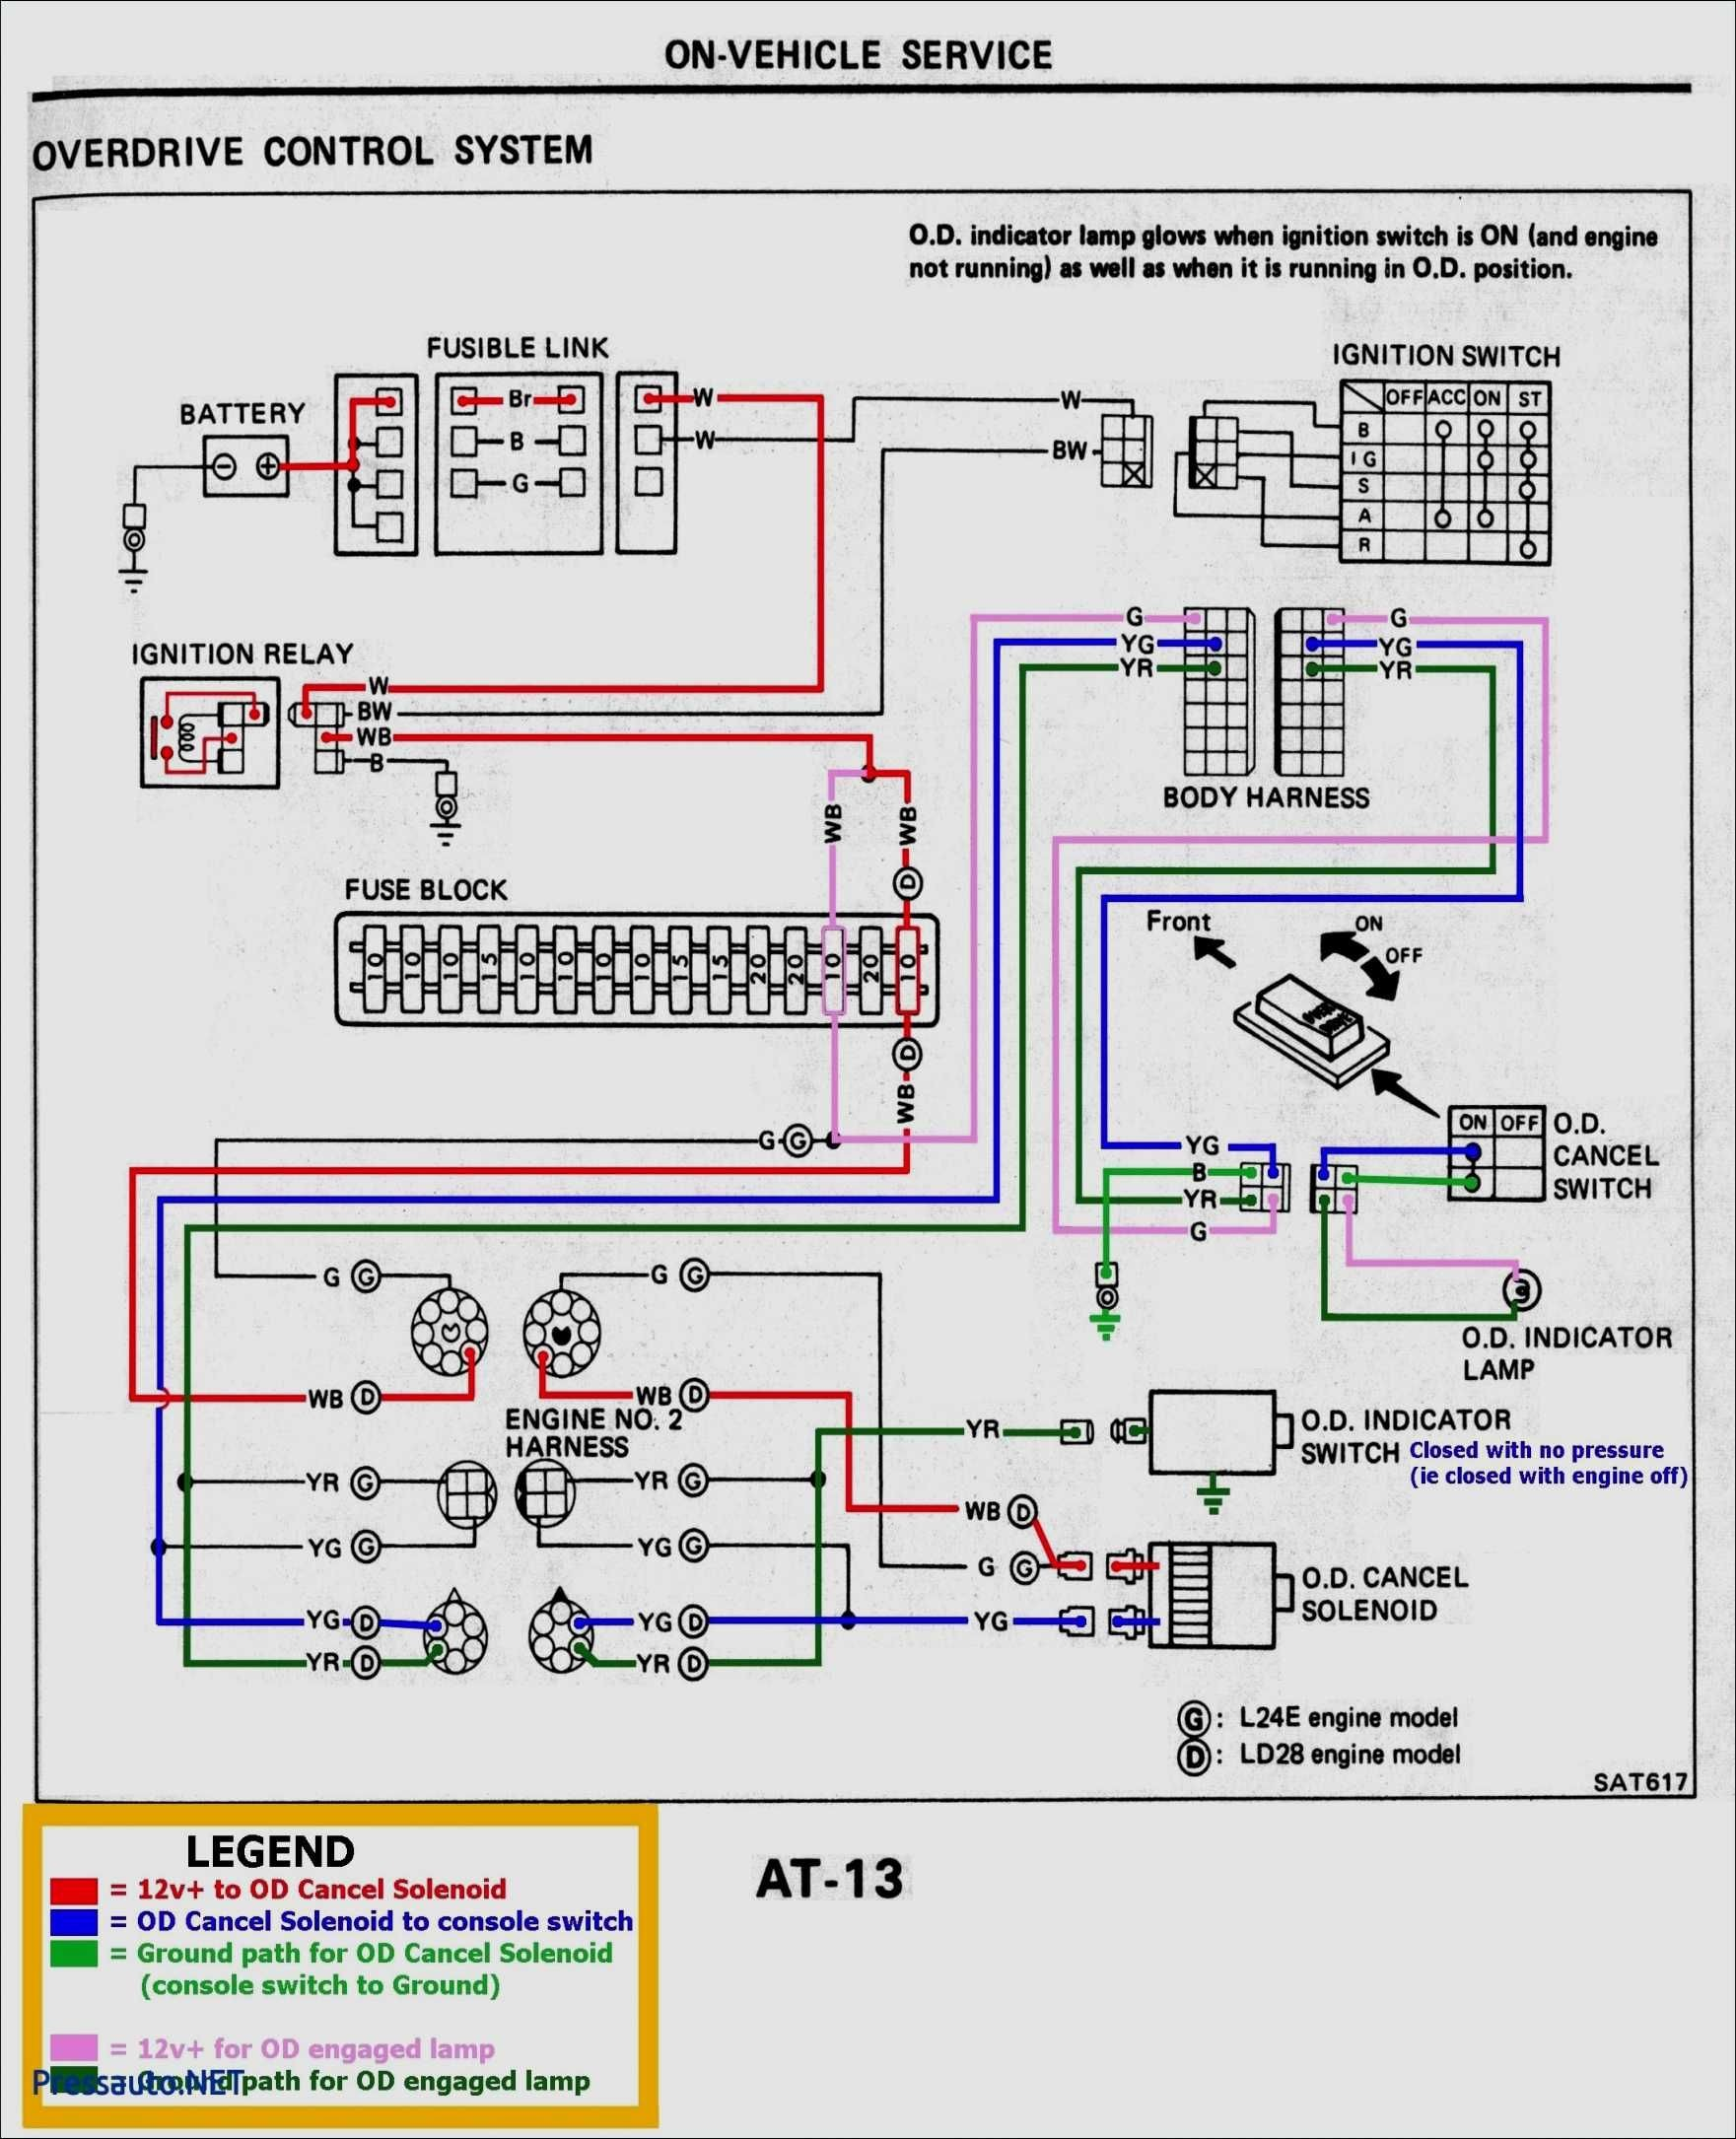 [QNCB_7524]  DIAGRAM] Wiring Diagram Pioneer Deh 17 FULL Version HD Quality Deh 17 -  NMBHW81WIRING.COMPASPADERNOVILLAGGIO.IT | Pioneer Deh 43 Wiring Diagram |  | Compaspadernovillaggio.it